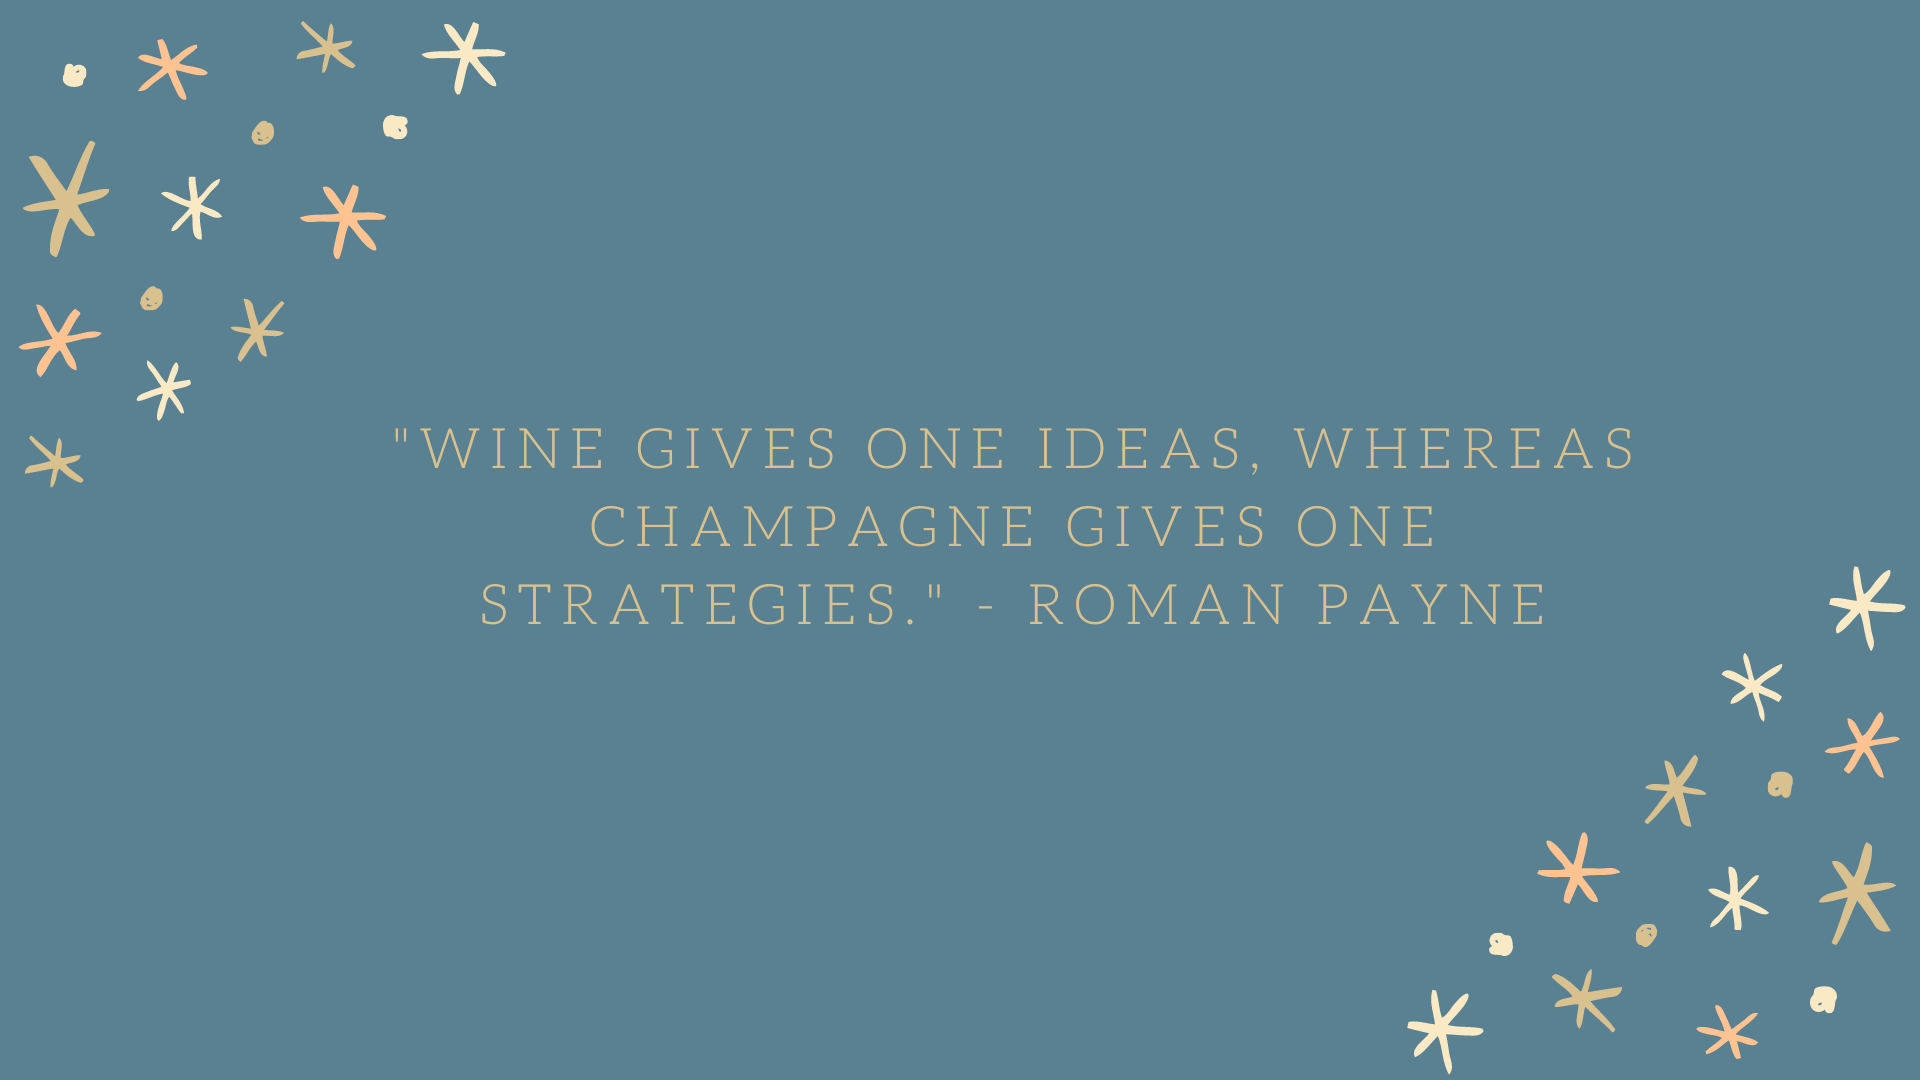 Wine gives one 'ideas,' whereas champagne gives one 'strategies'. | Roman Payne